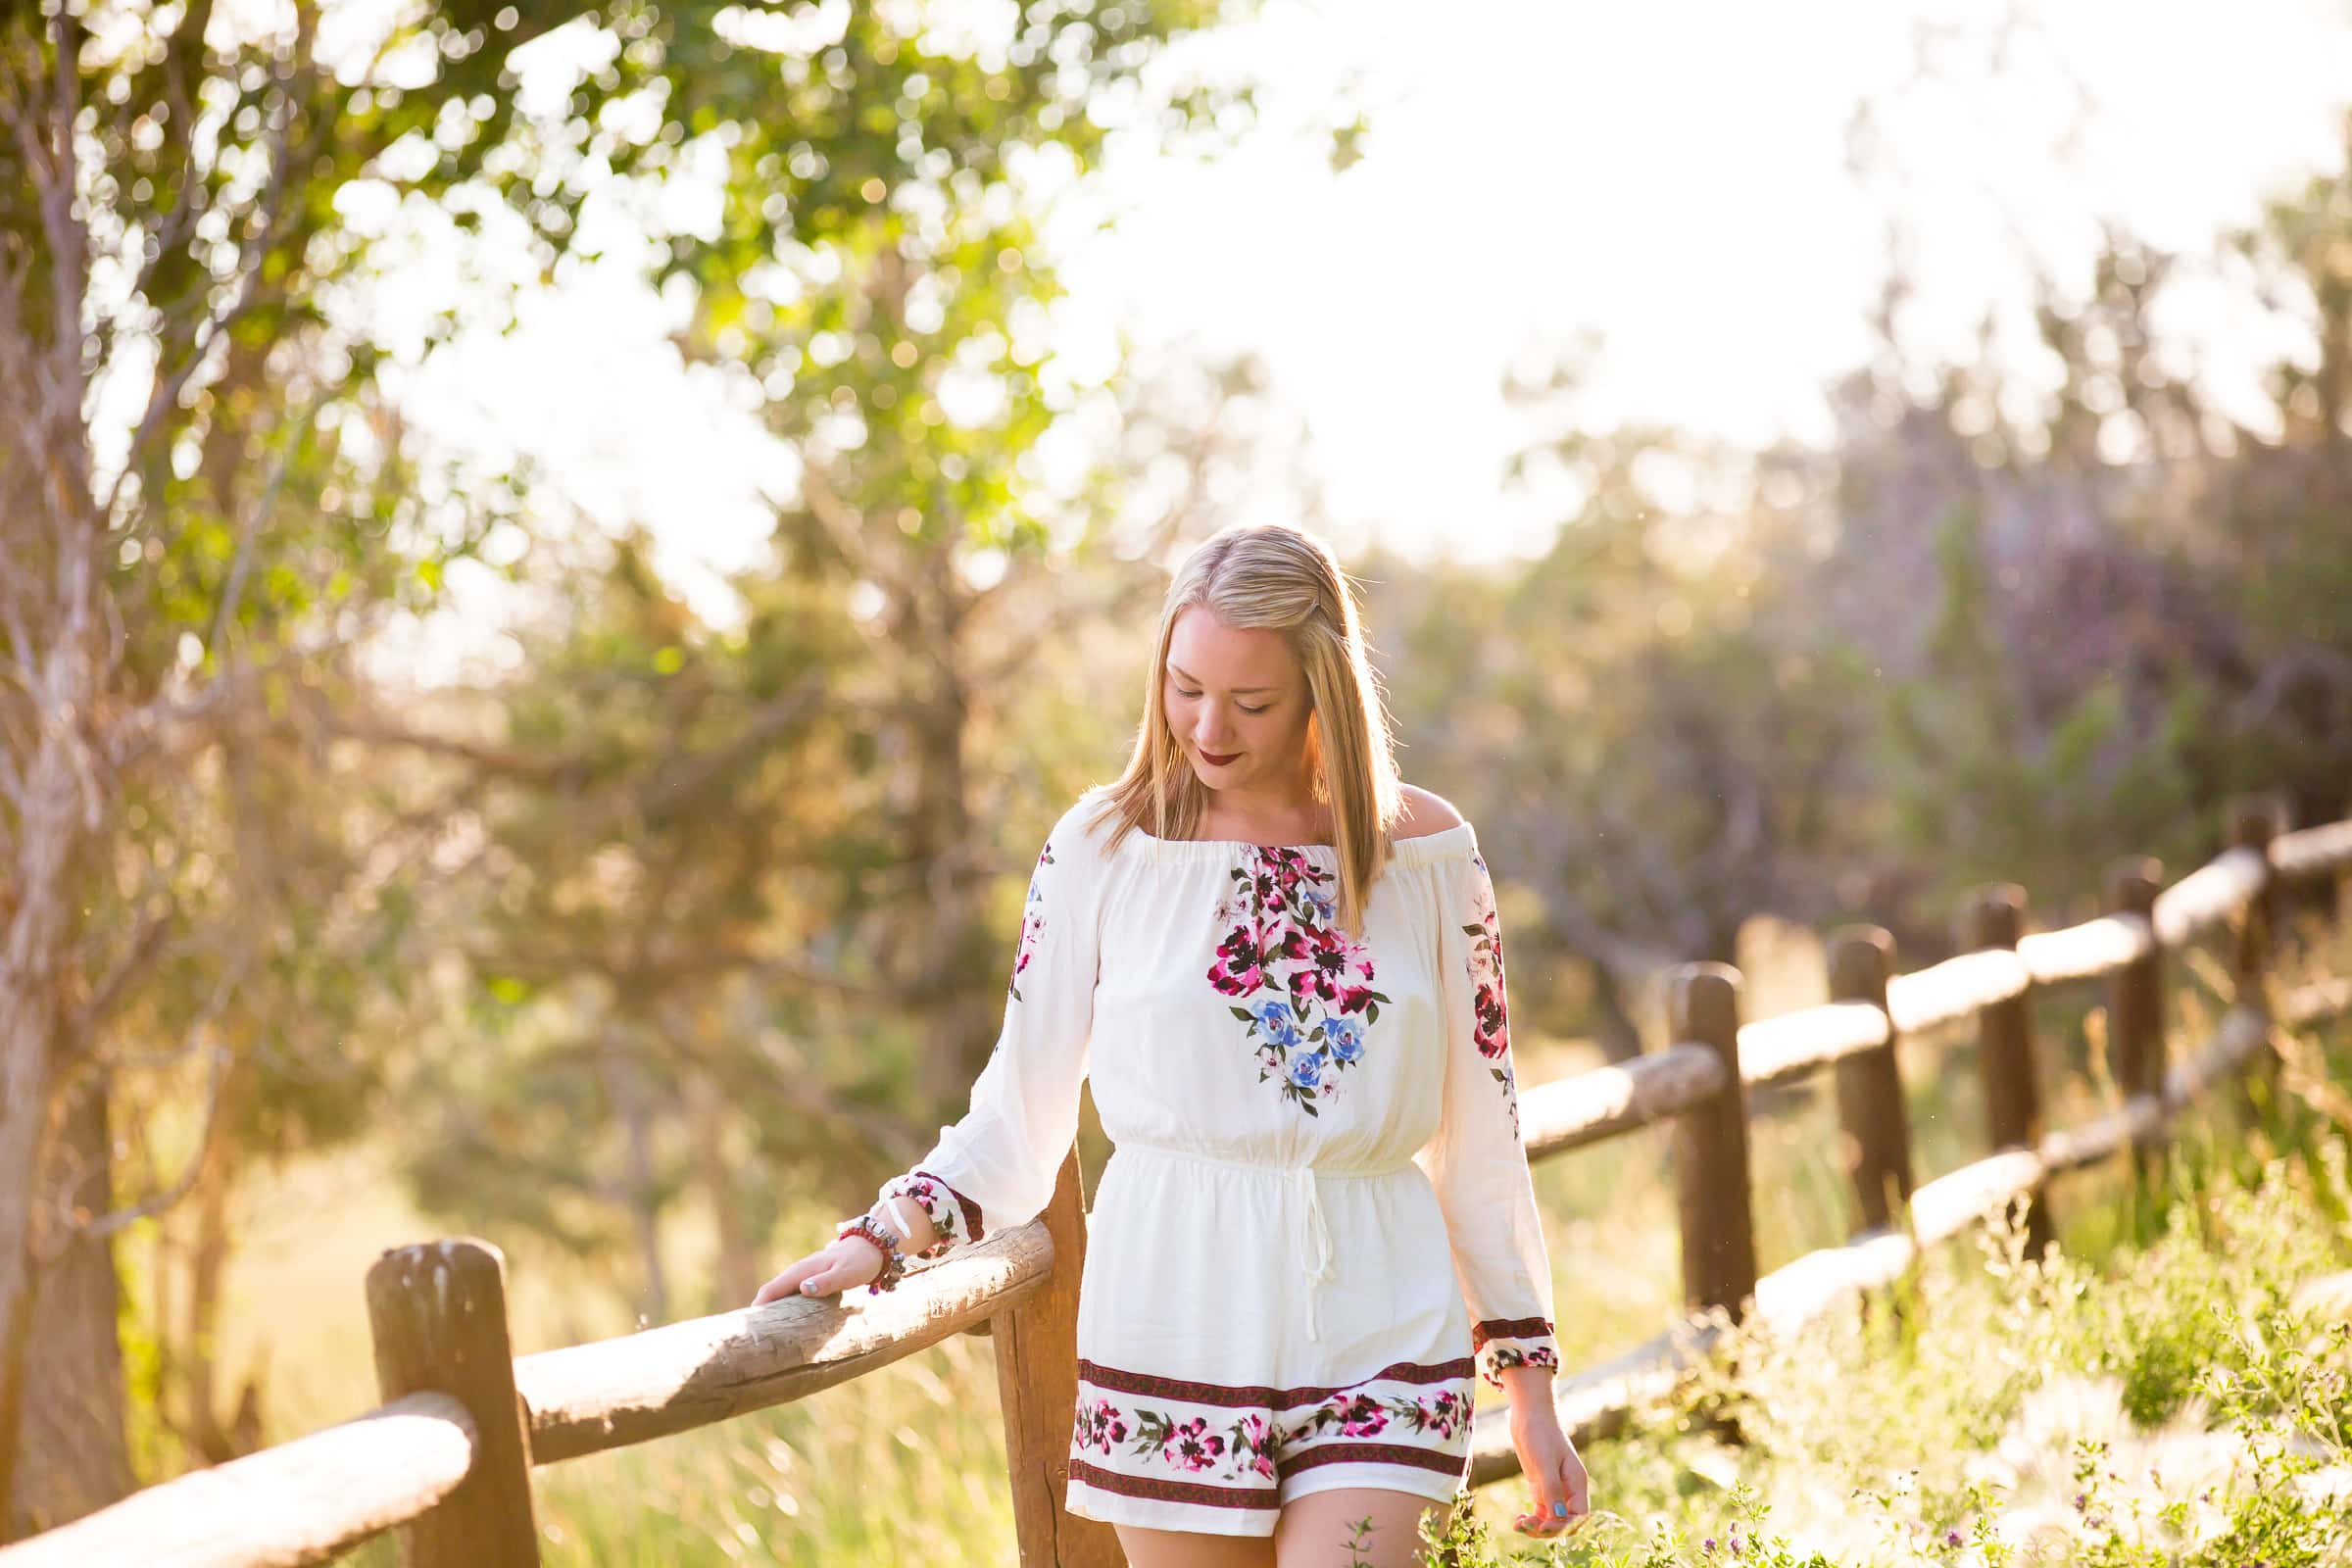 Three great tips to prepare for your Senior Photography Session